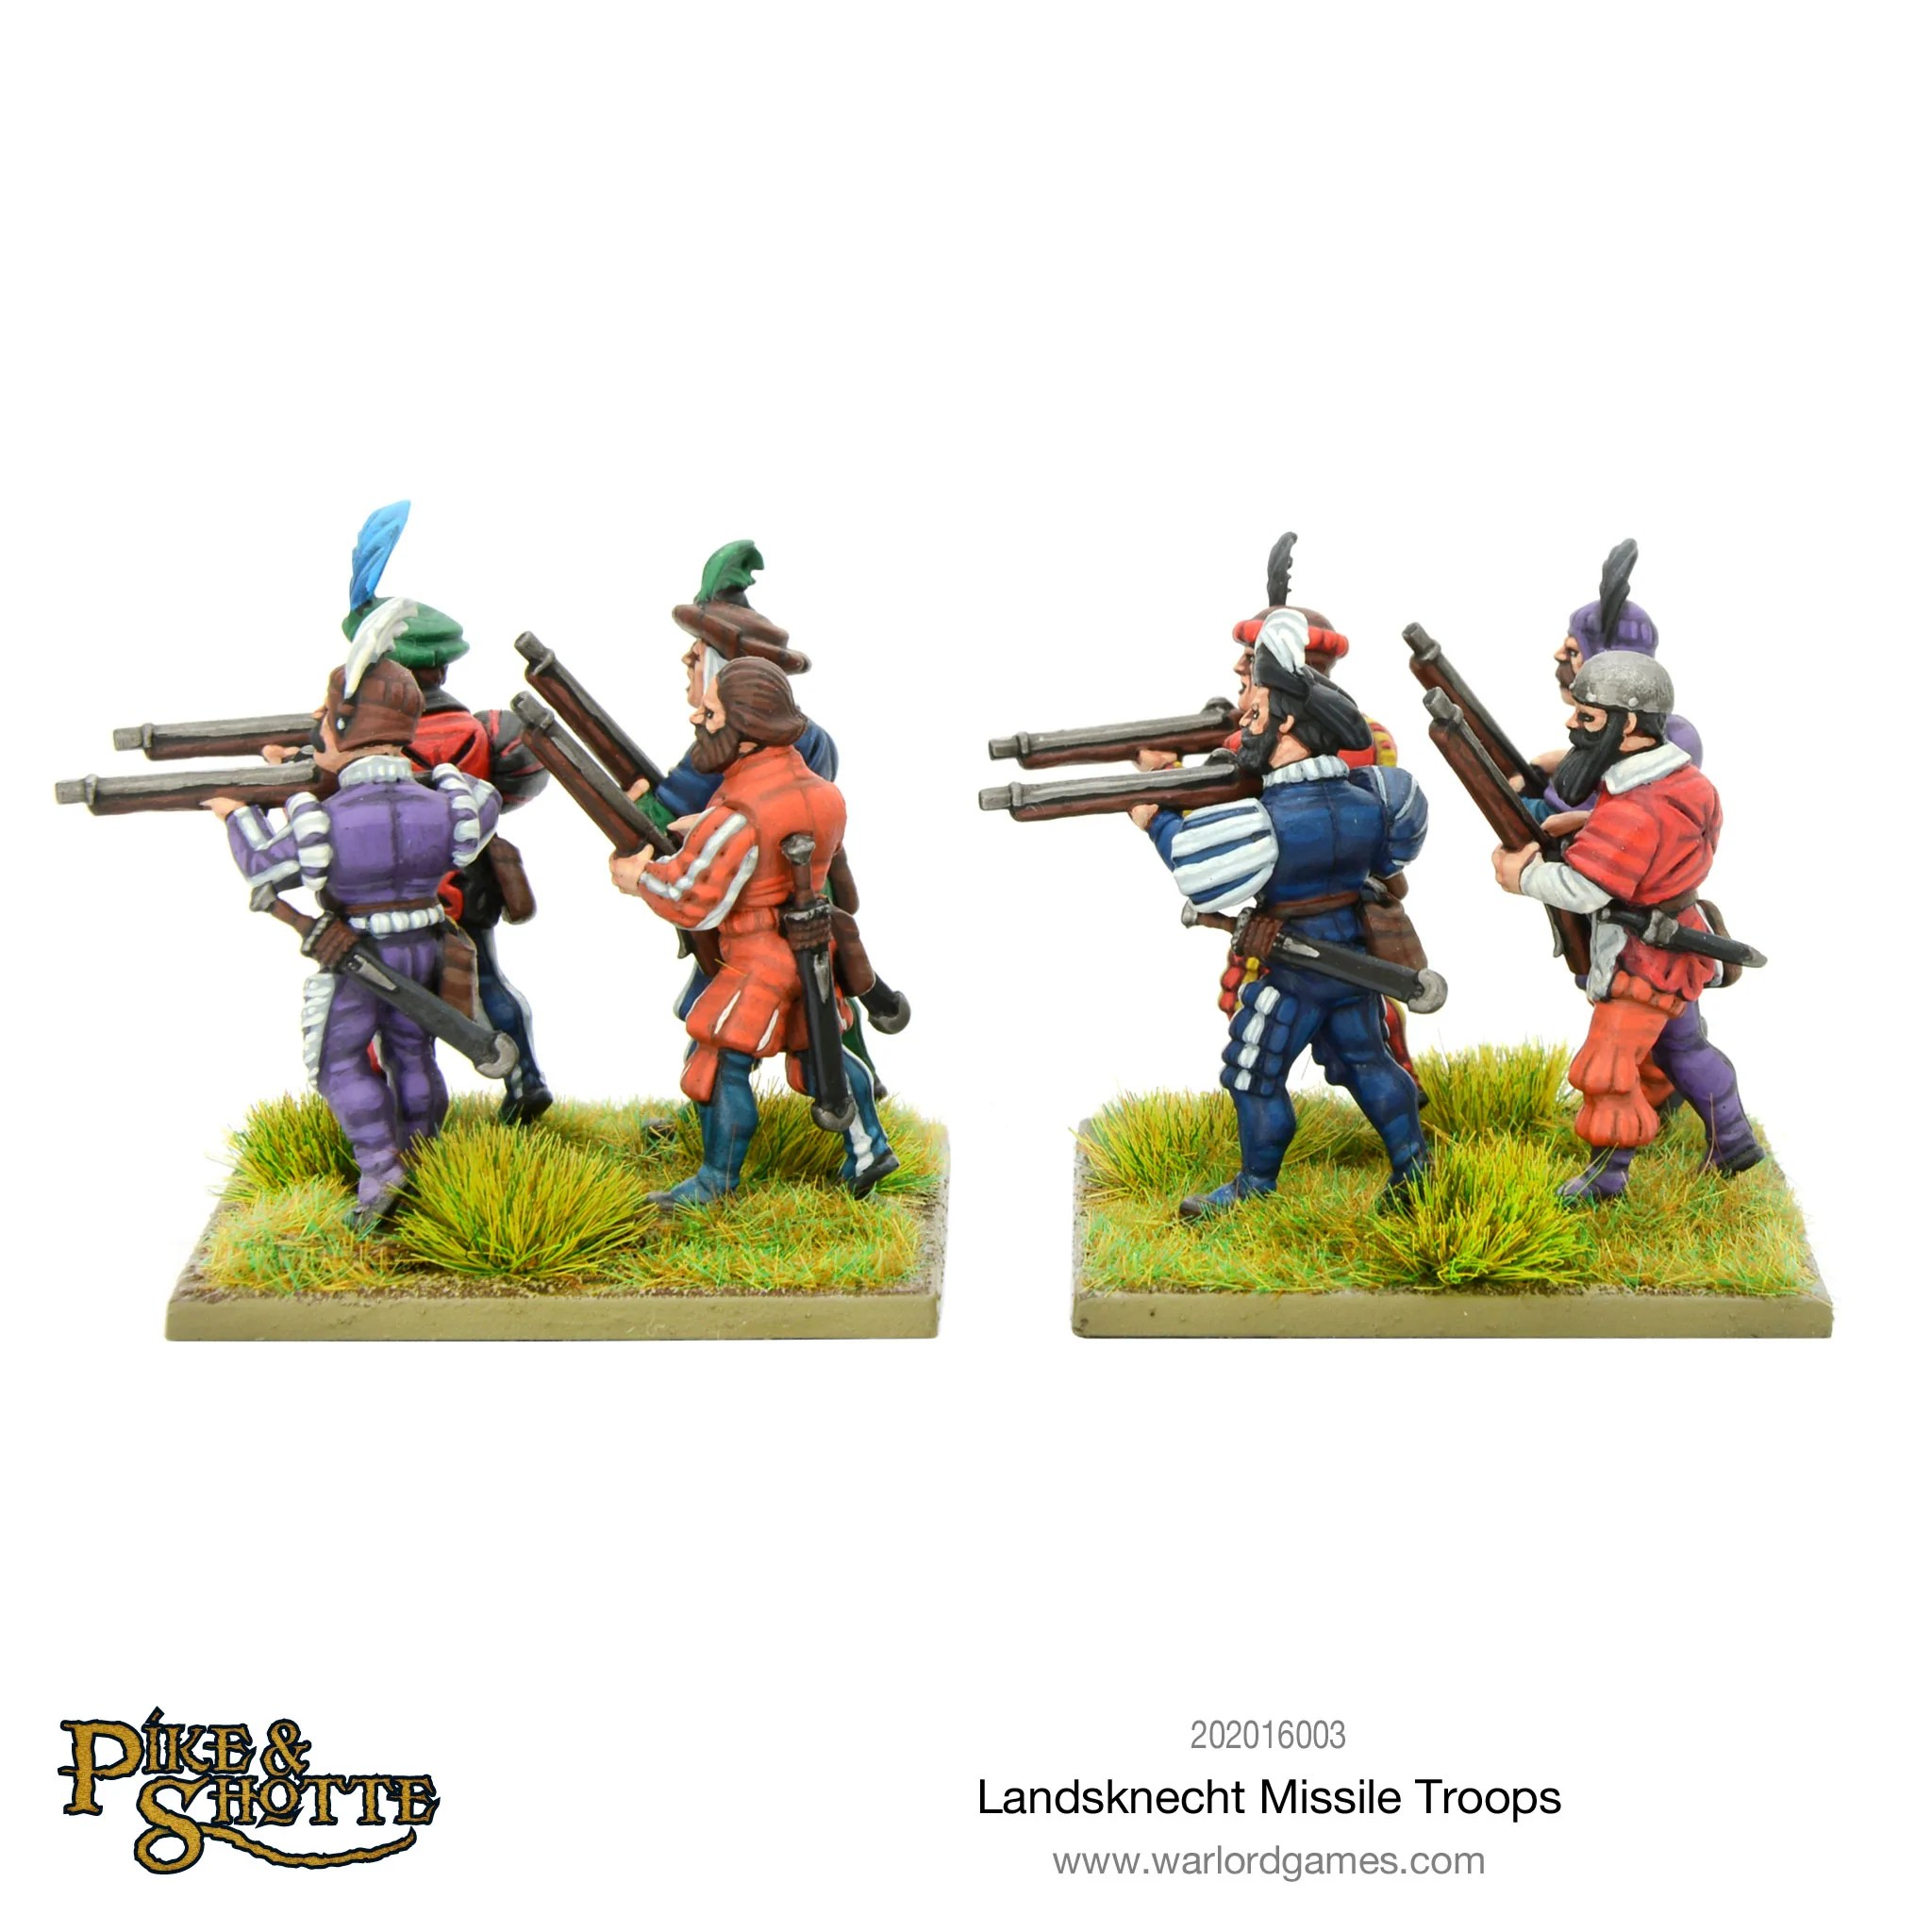 Italian Food Carry Out Near Me Italian Wars 1494-1559 - Warlord Games